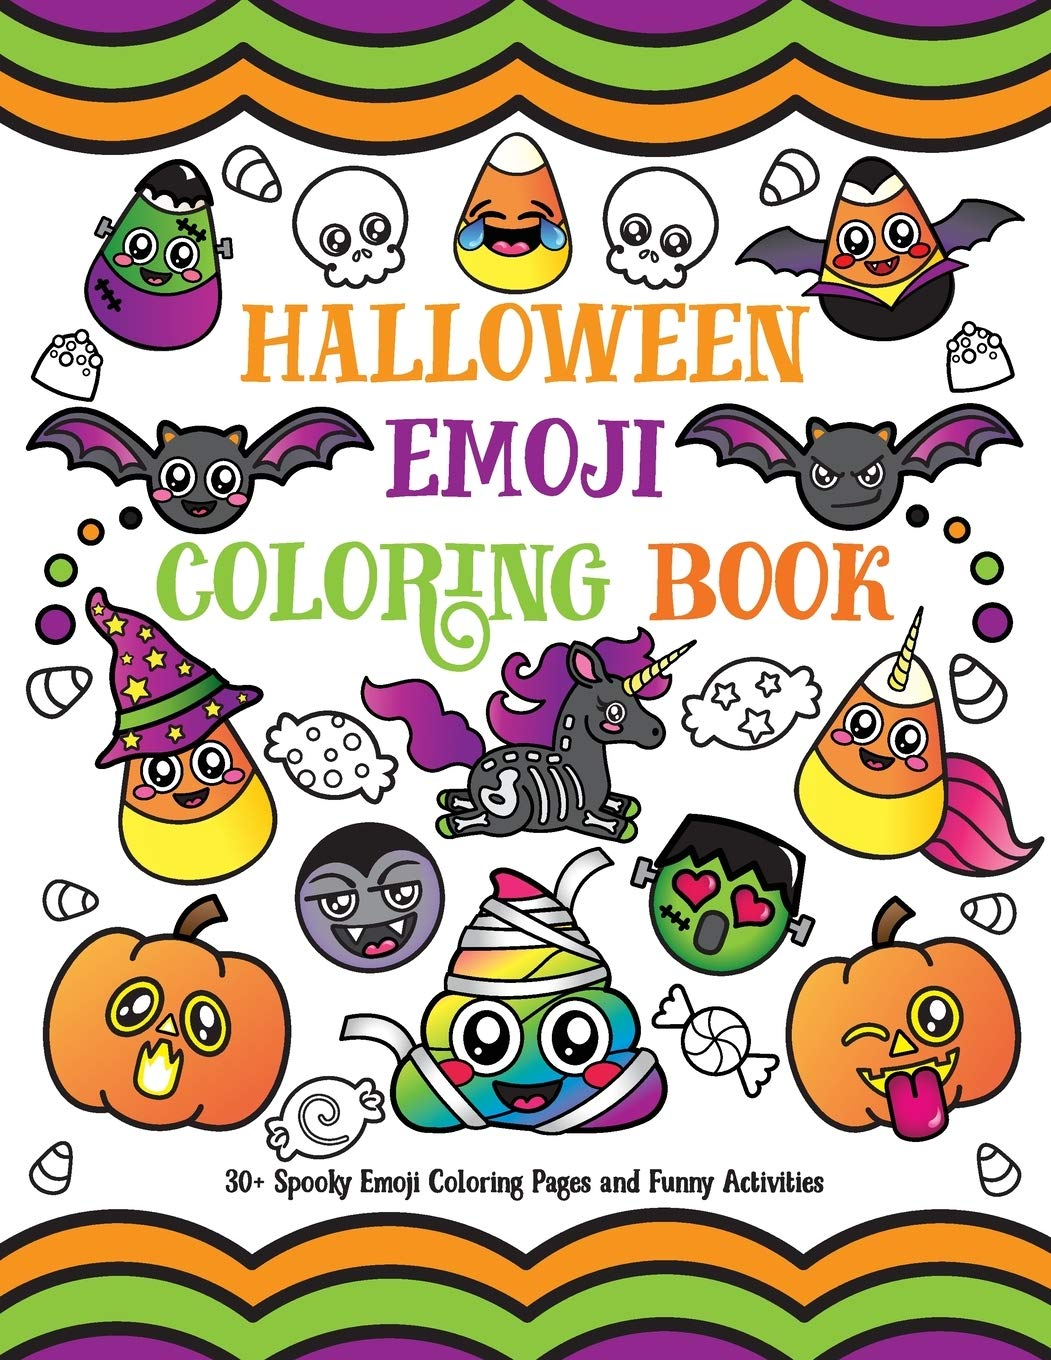 Halloween Emoji Coloring Book 30 Spooky Emoji Coloring Pages And Funny Activities Spectrum Nyx 9781643400112 Amazon Com Books